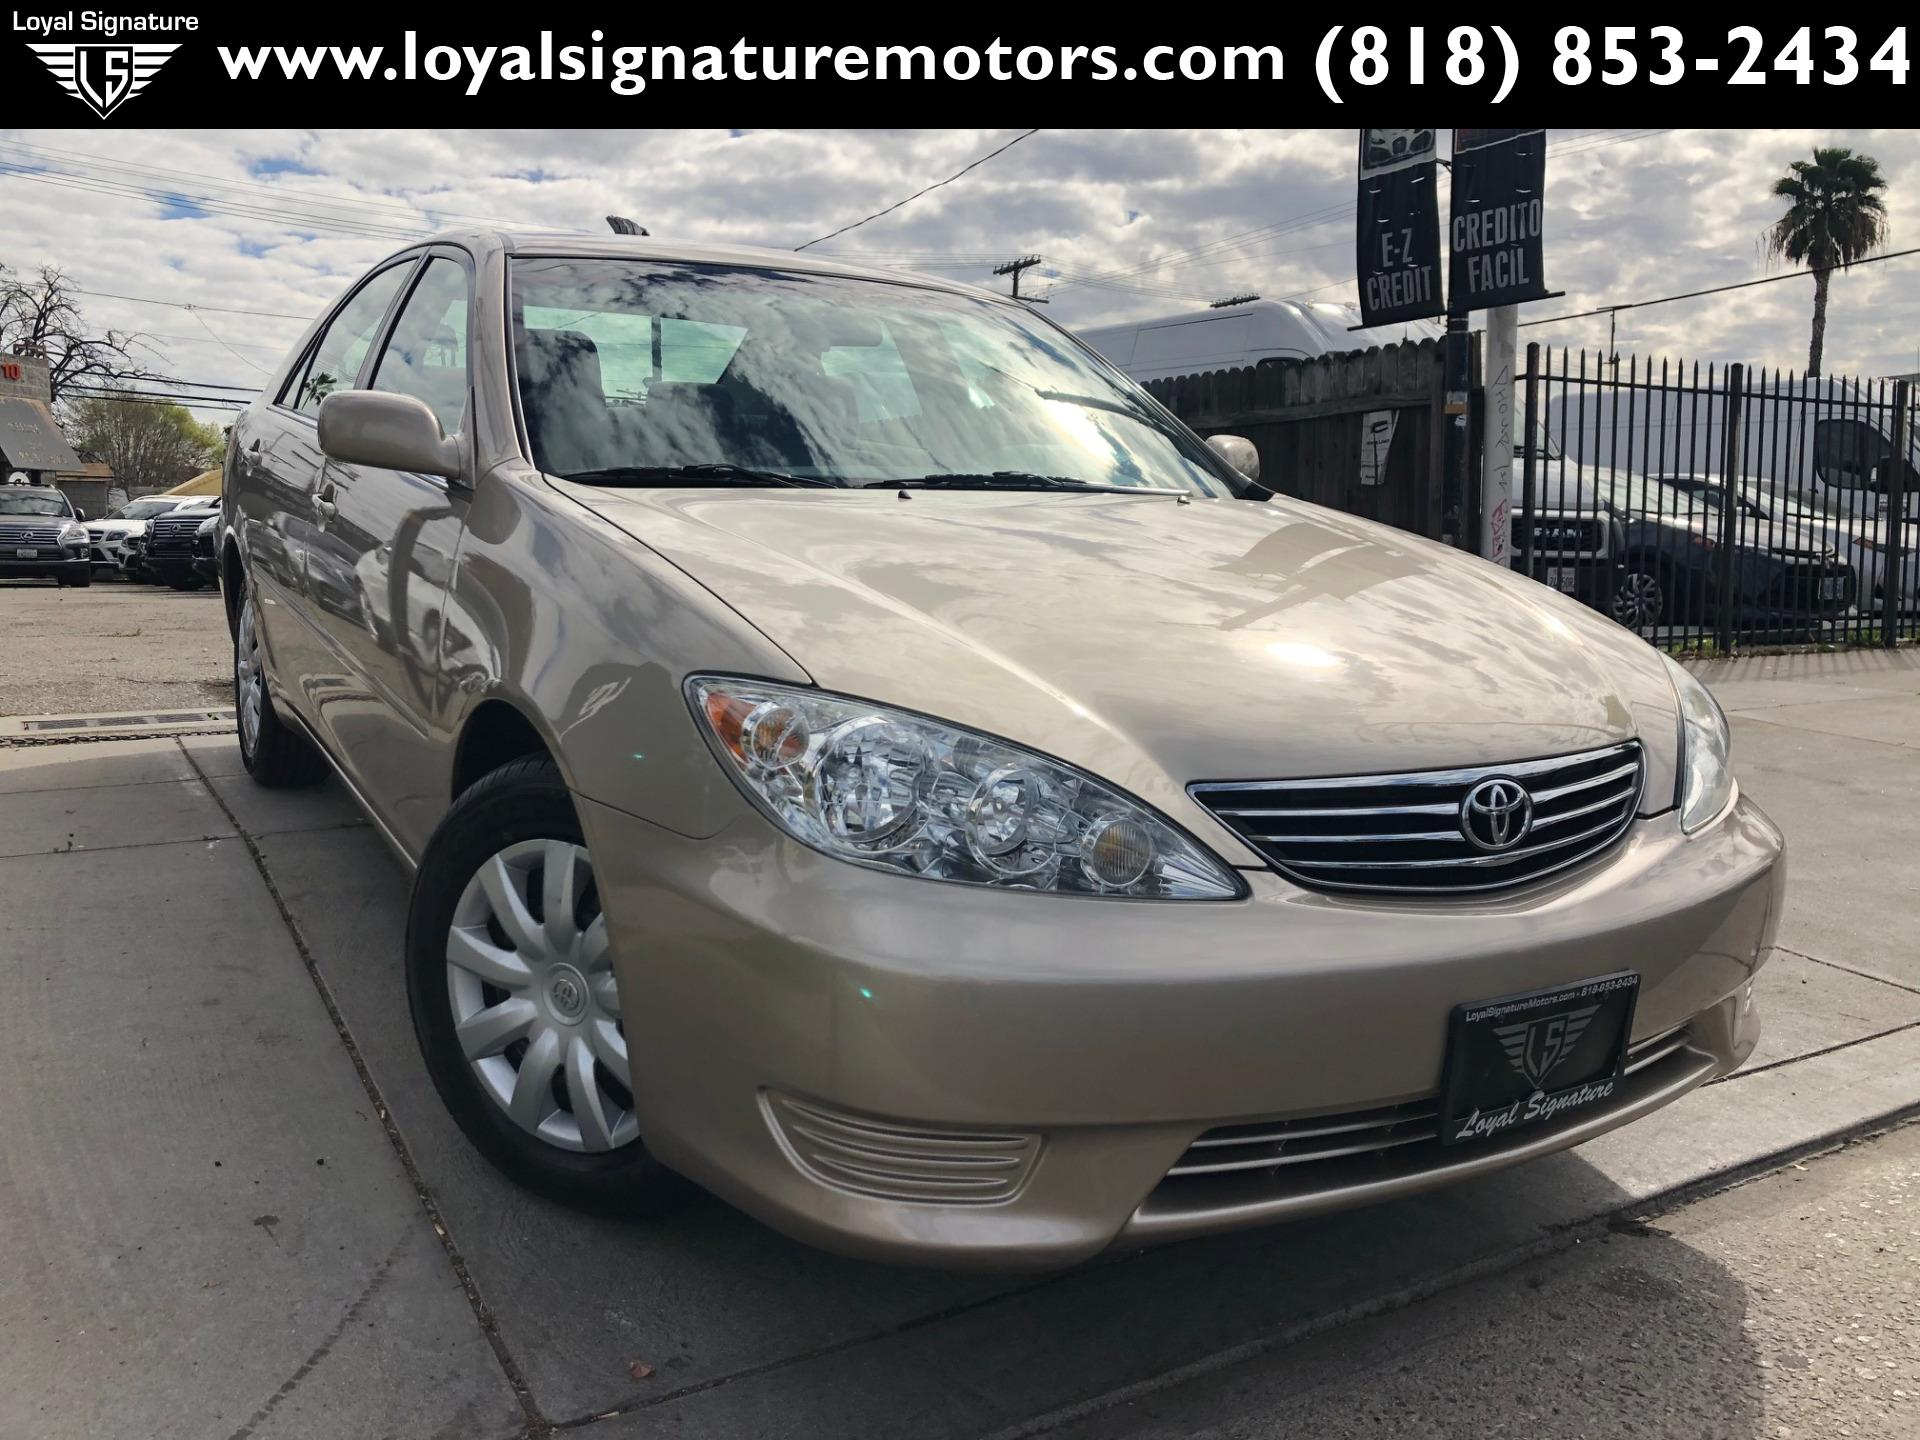 Used 2005 Toyota Camry LE | Van Nuys, CA